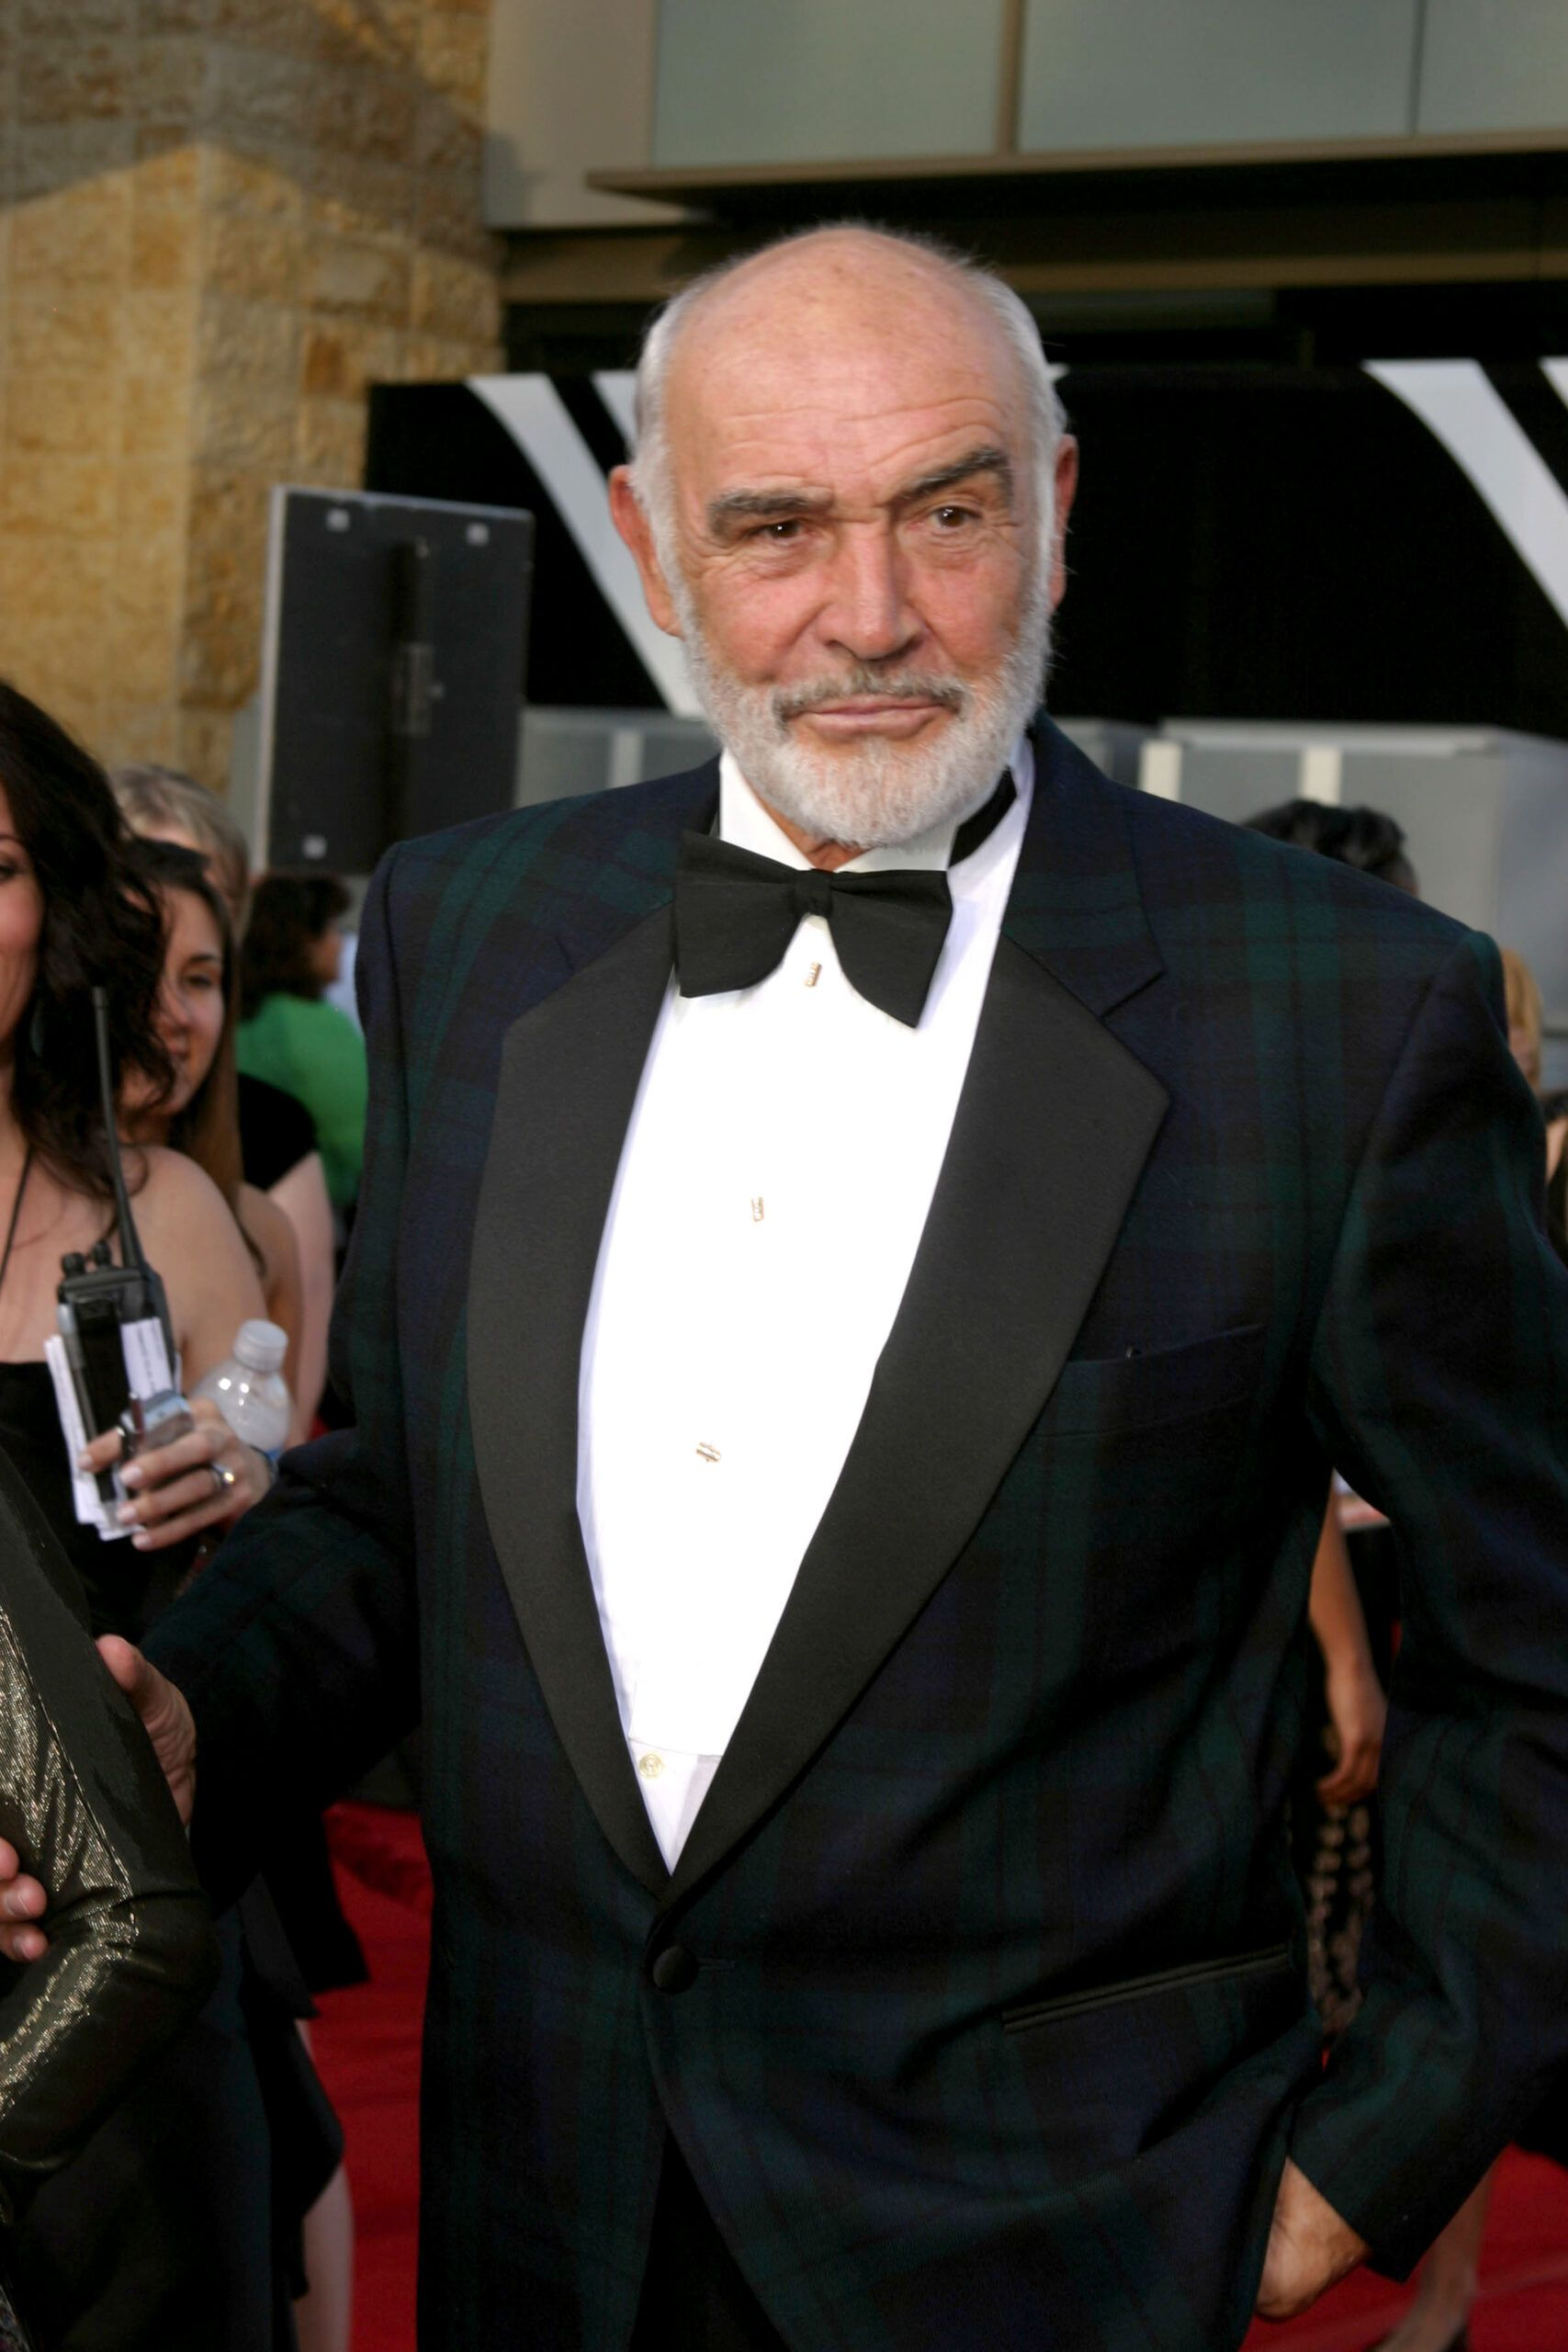 Iconic Actor Sir Sean Connery Has Passed Away At 90